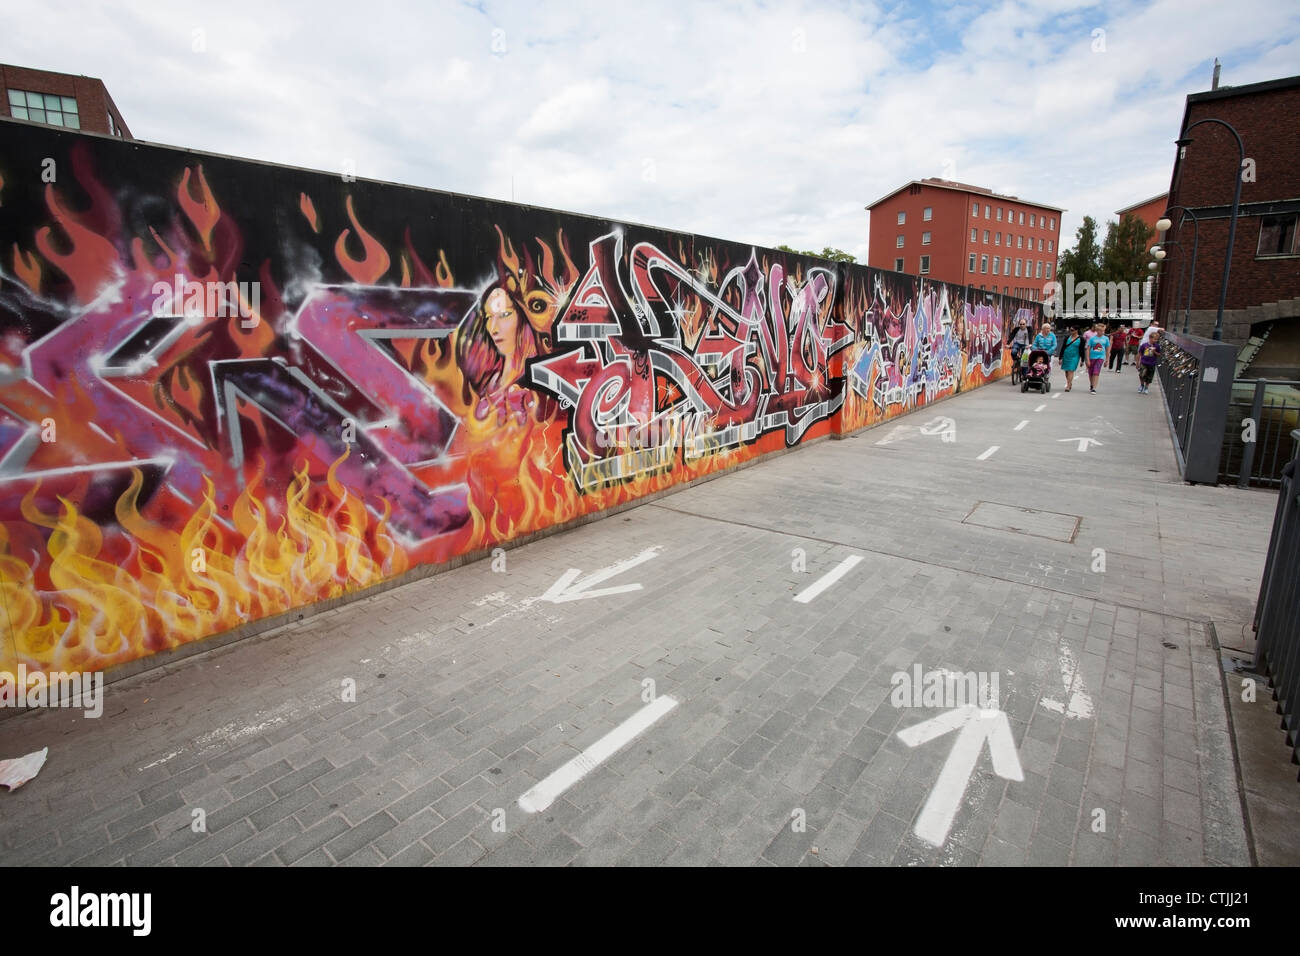 Graffiti wall, Tampere Finland Stock Photo